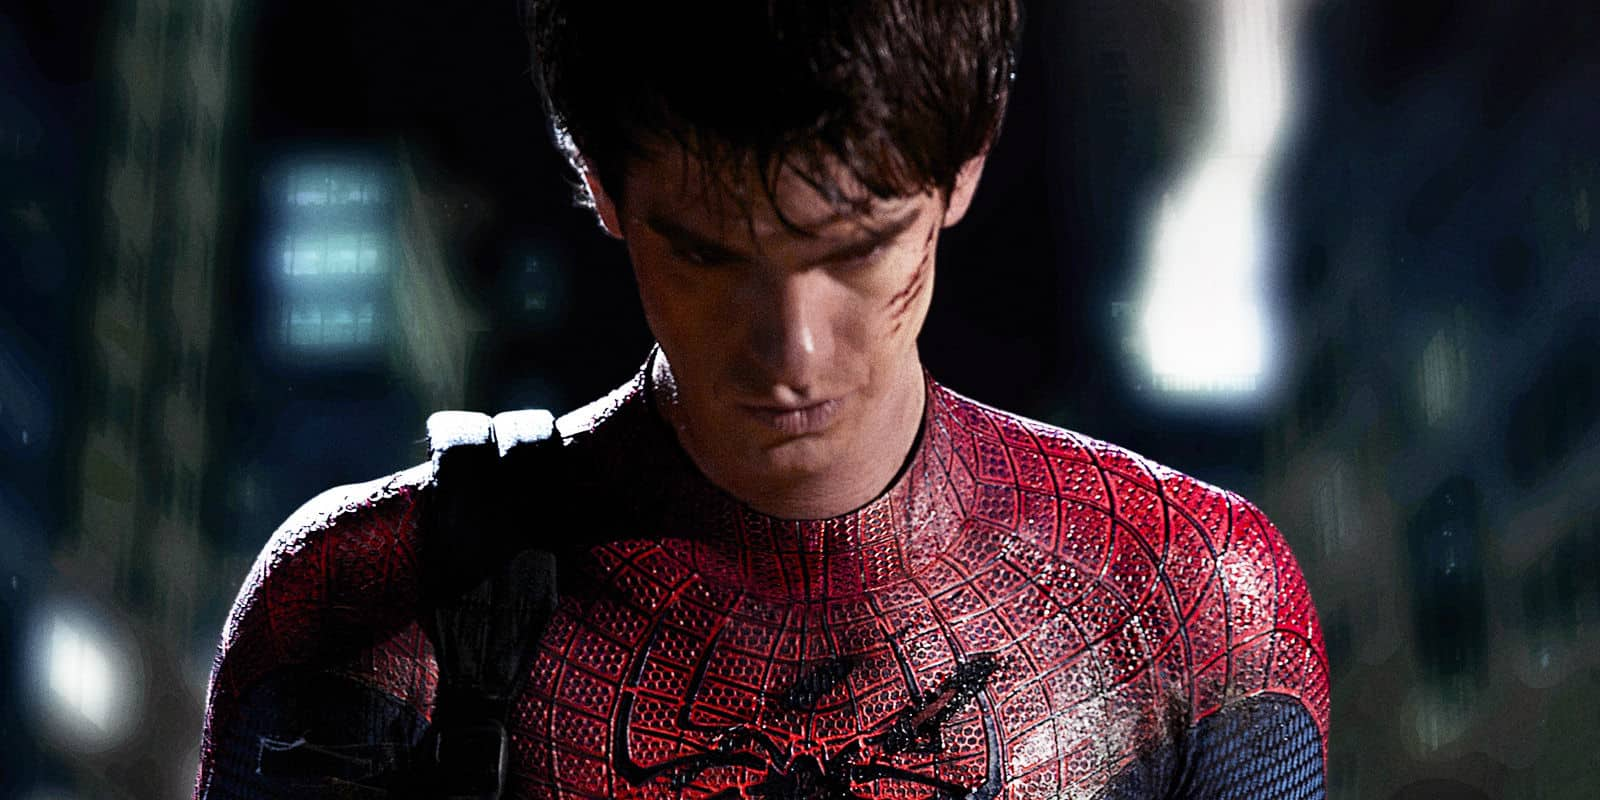 Video Andrew Garfield Suits Up As Spider Man One More